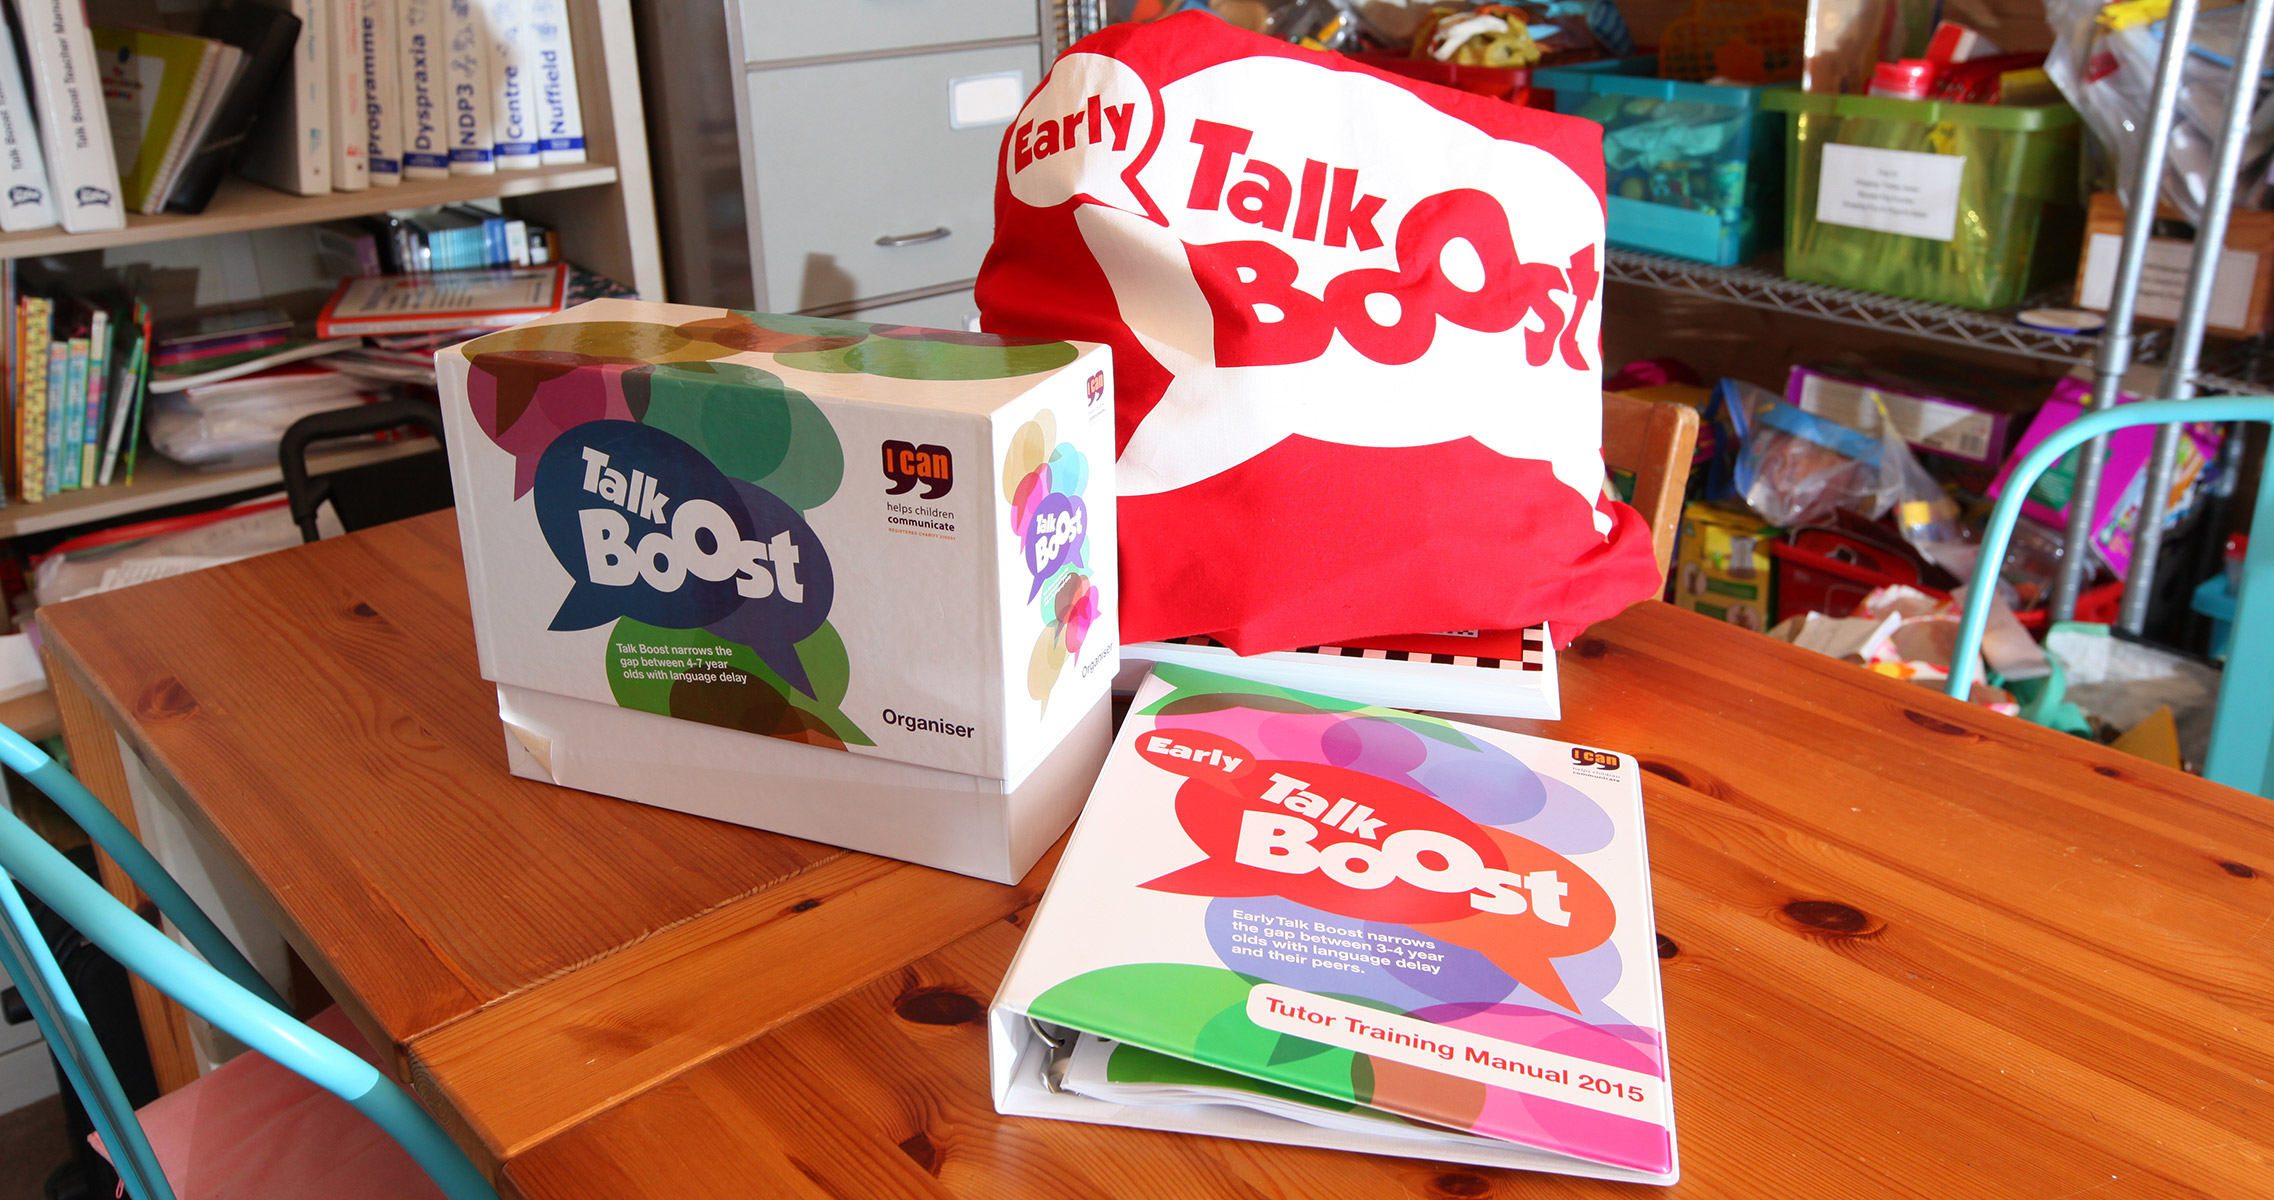 Early Talk Boost Programme